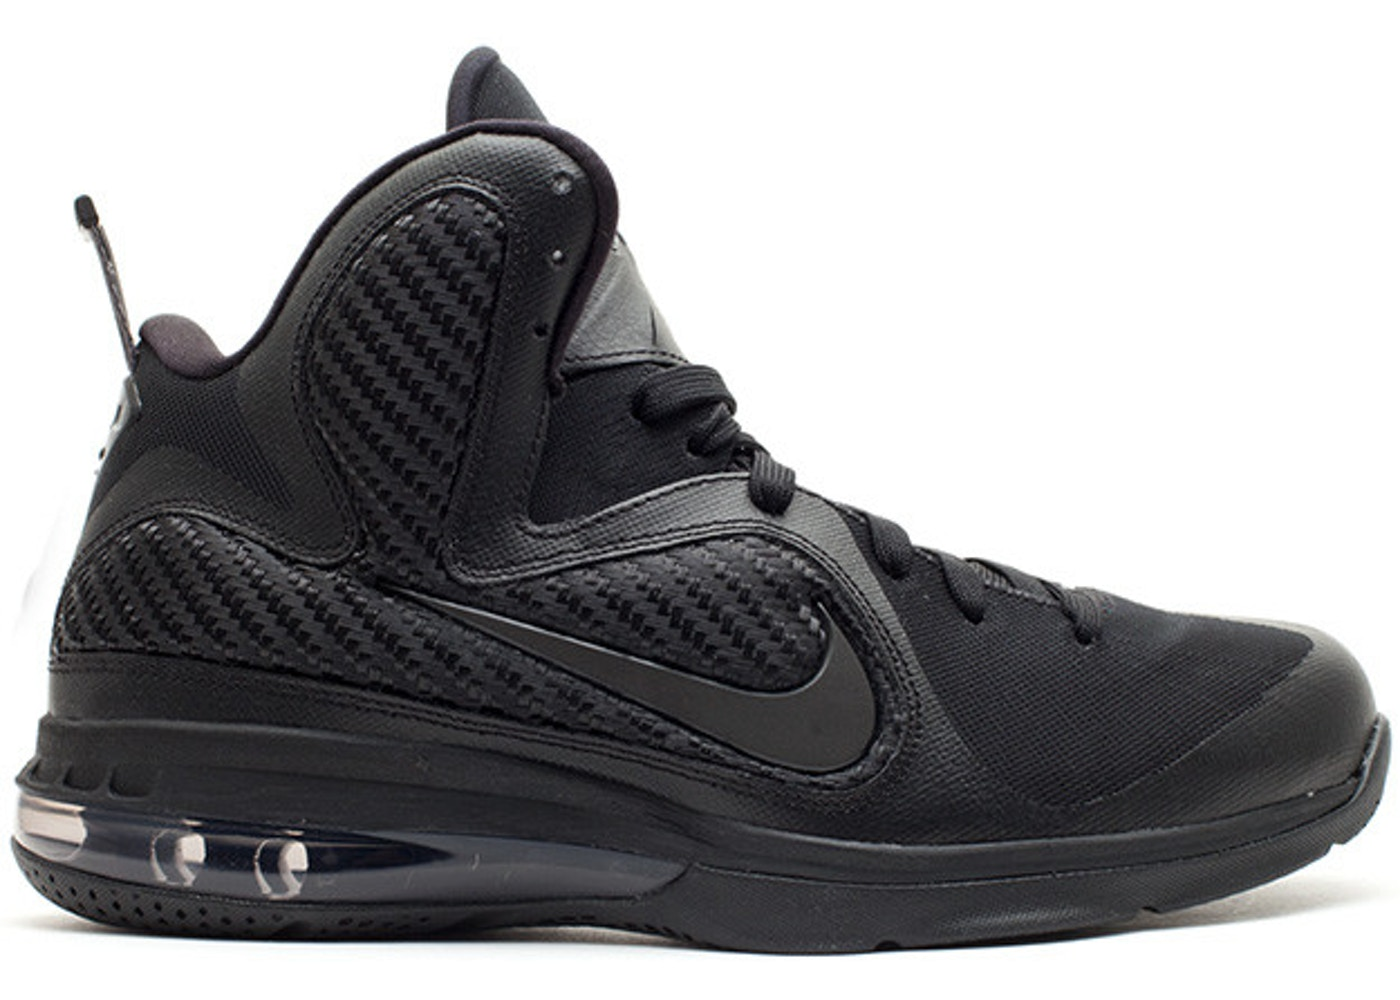 outlet store 3c4c4 85a8c Nike LeBron 9 Shoes - Last Sale